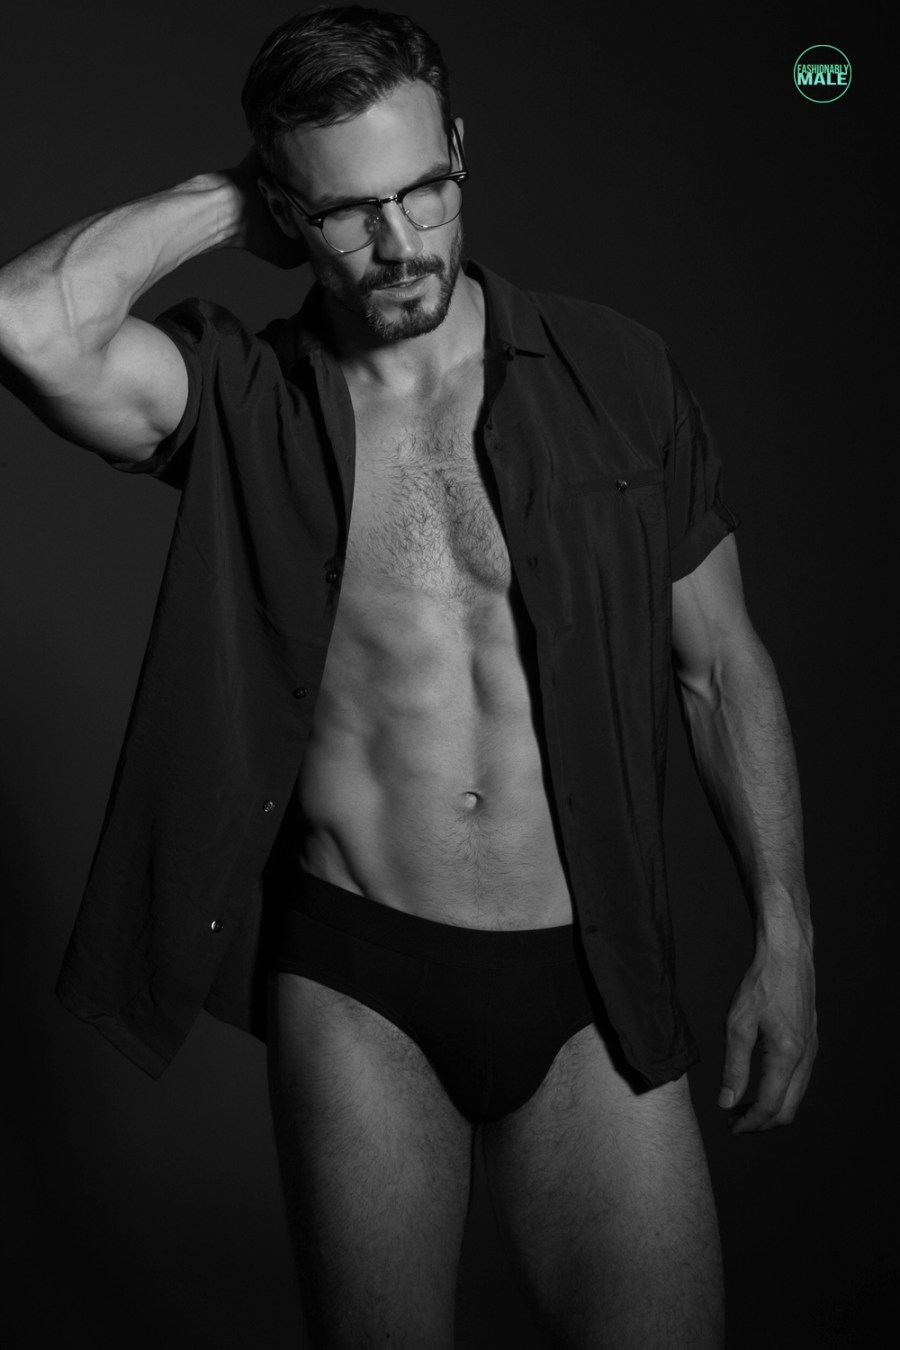 Adam Cowie by Malc Stone Fashionably Male10